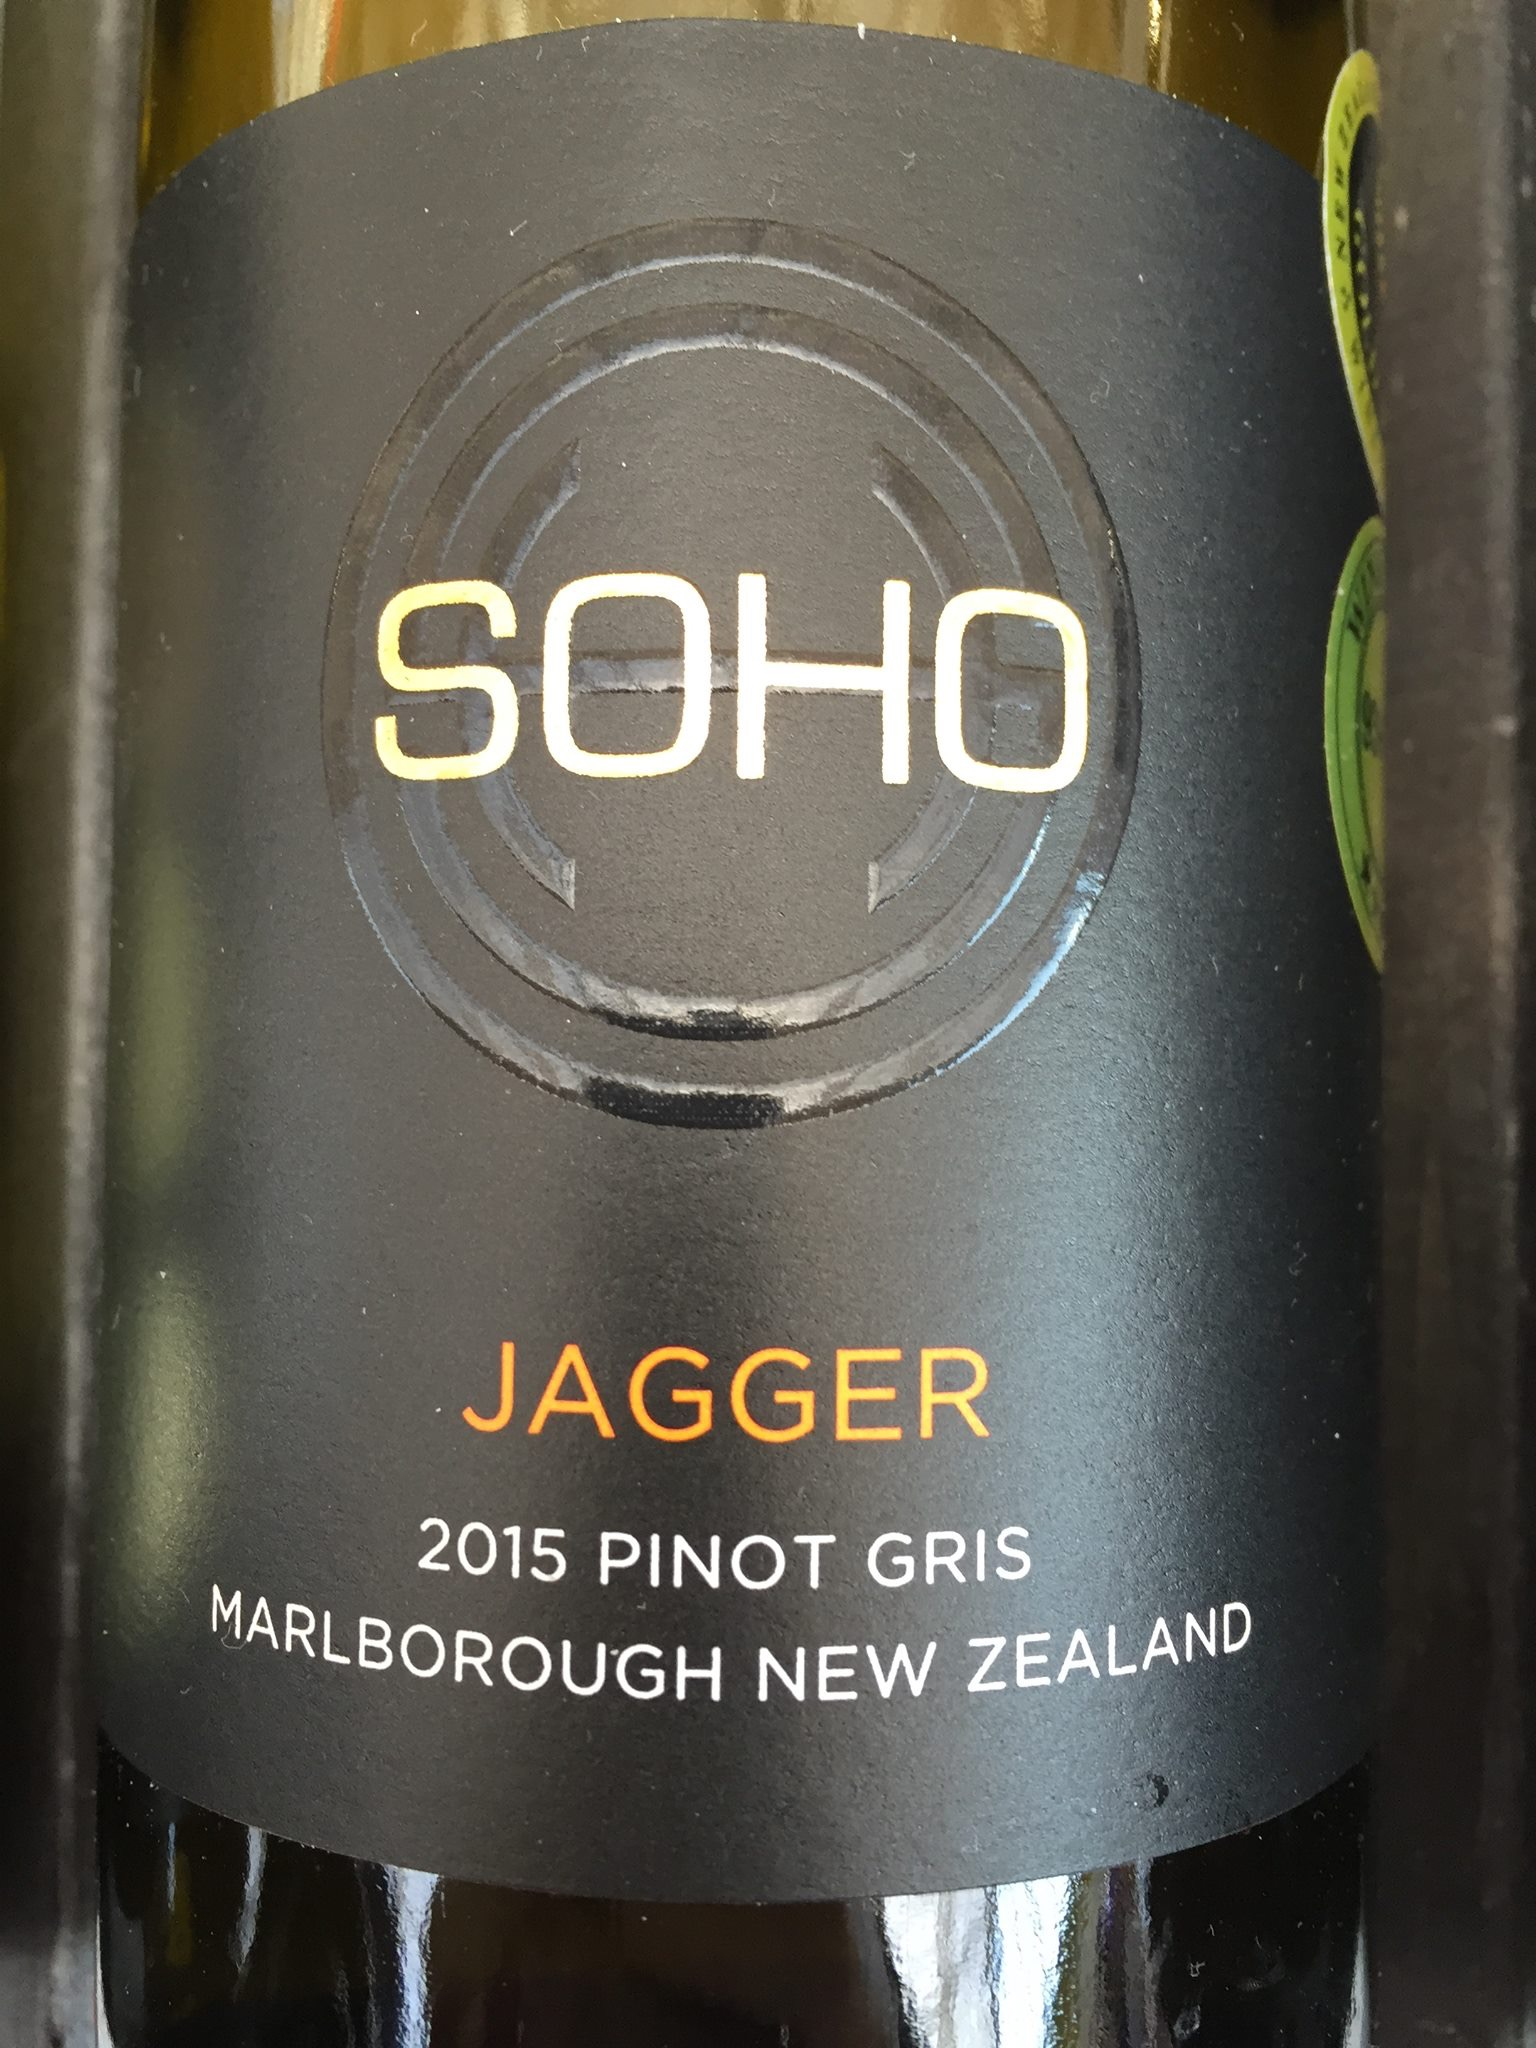 Soho – Jagger – Pinot Gris 2015 – Marlborough